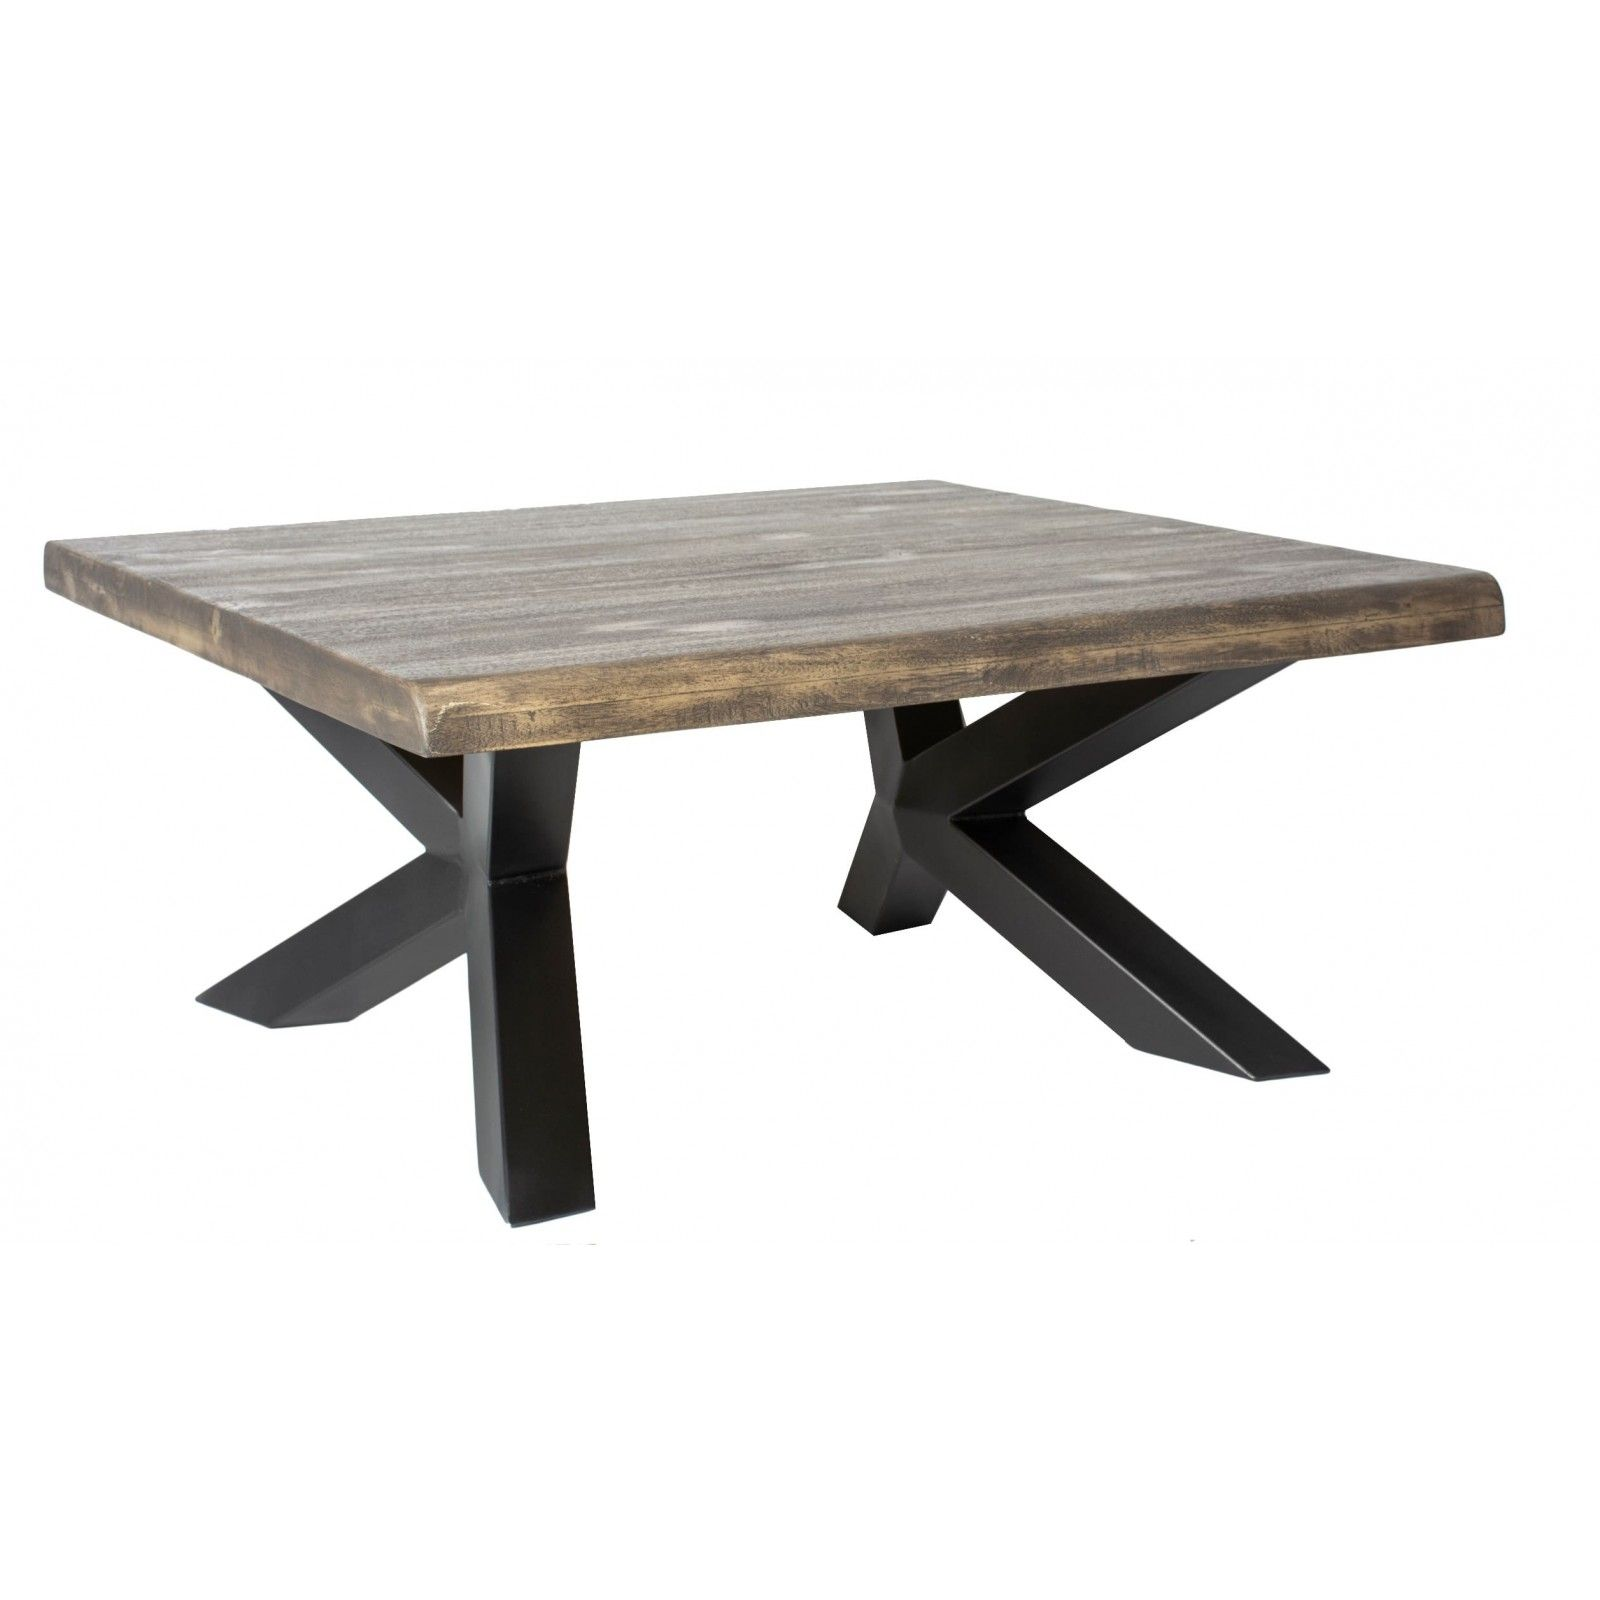 NEW YORK TABLE BASSE CARRÉE Style - 266